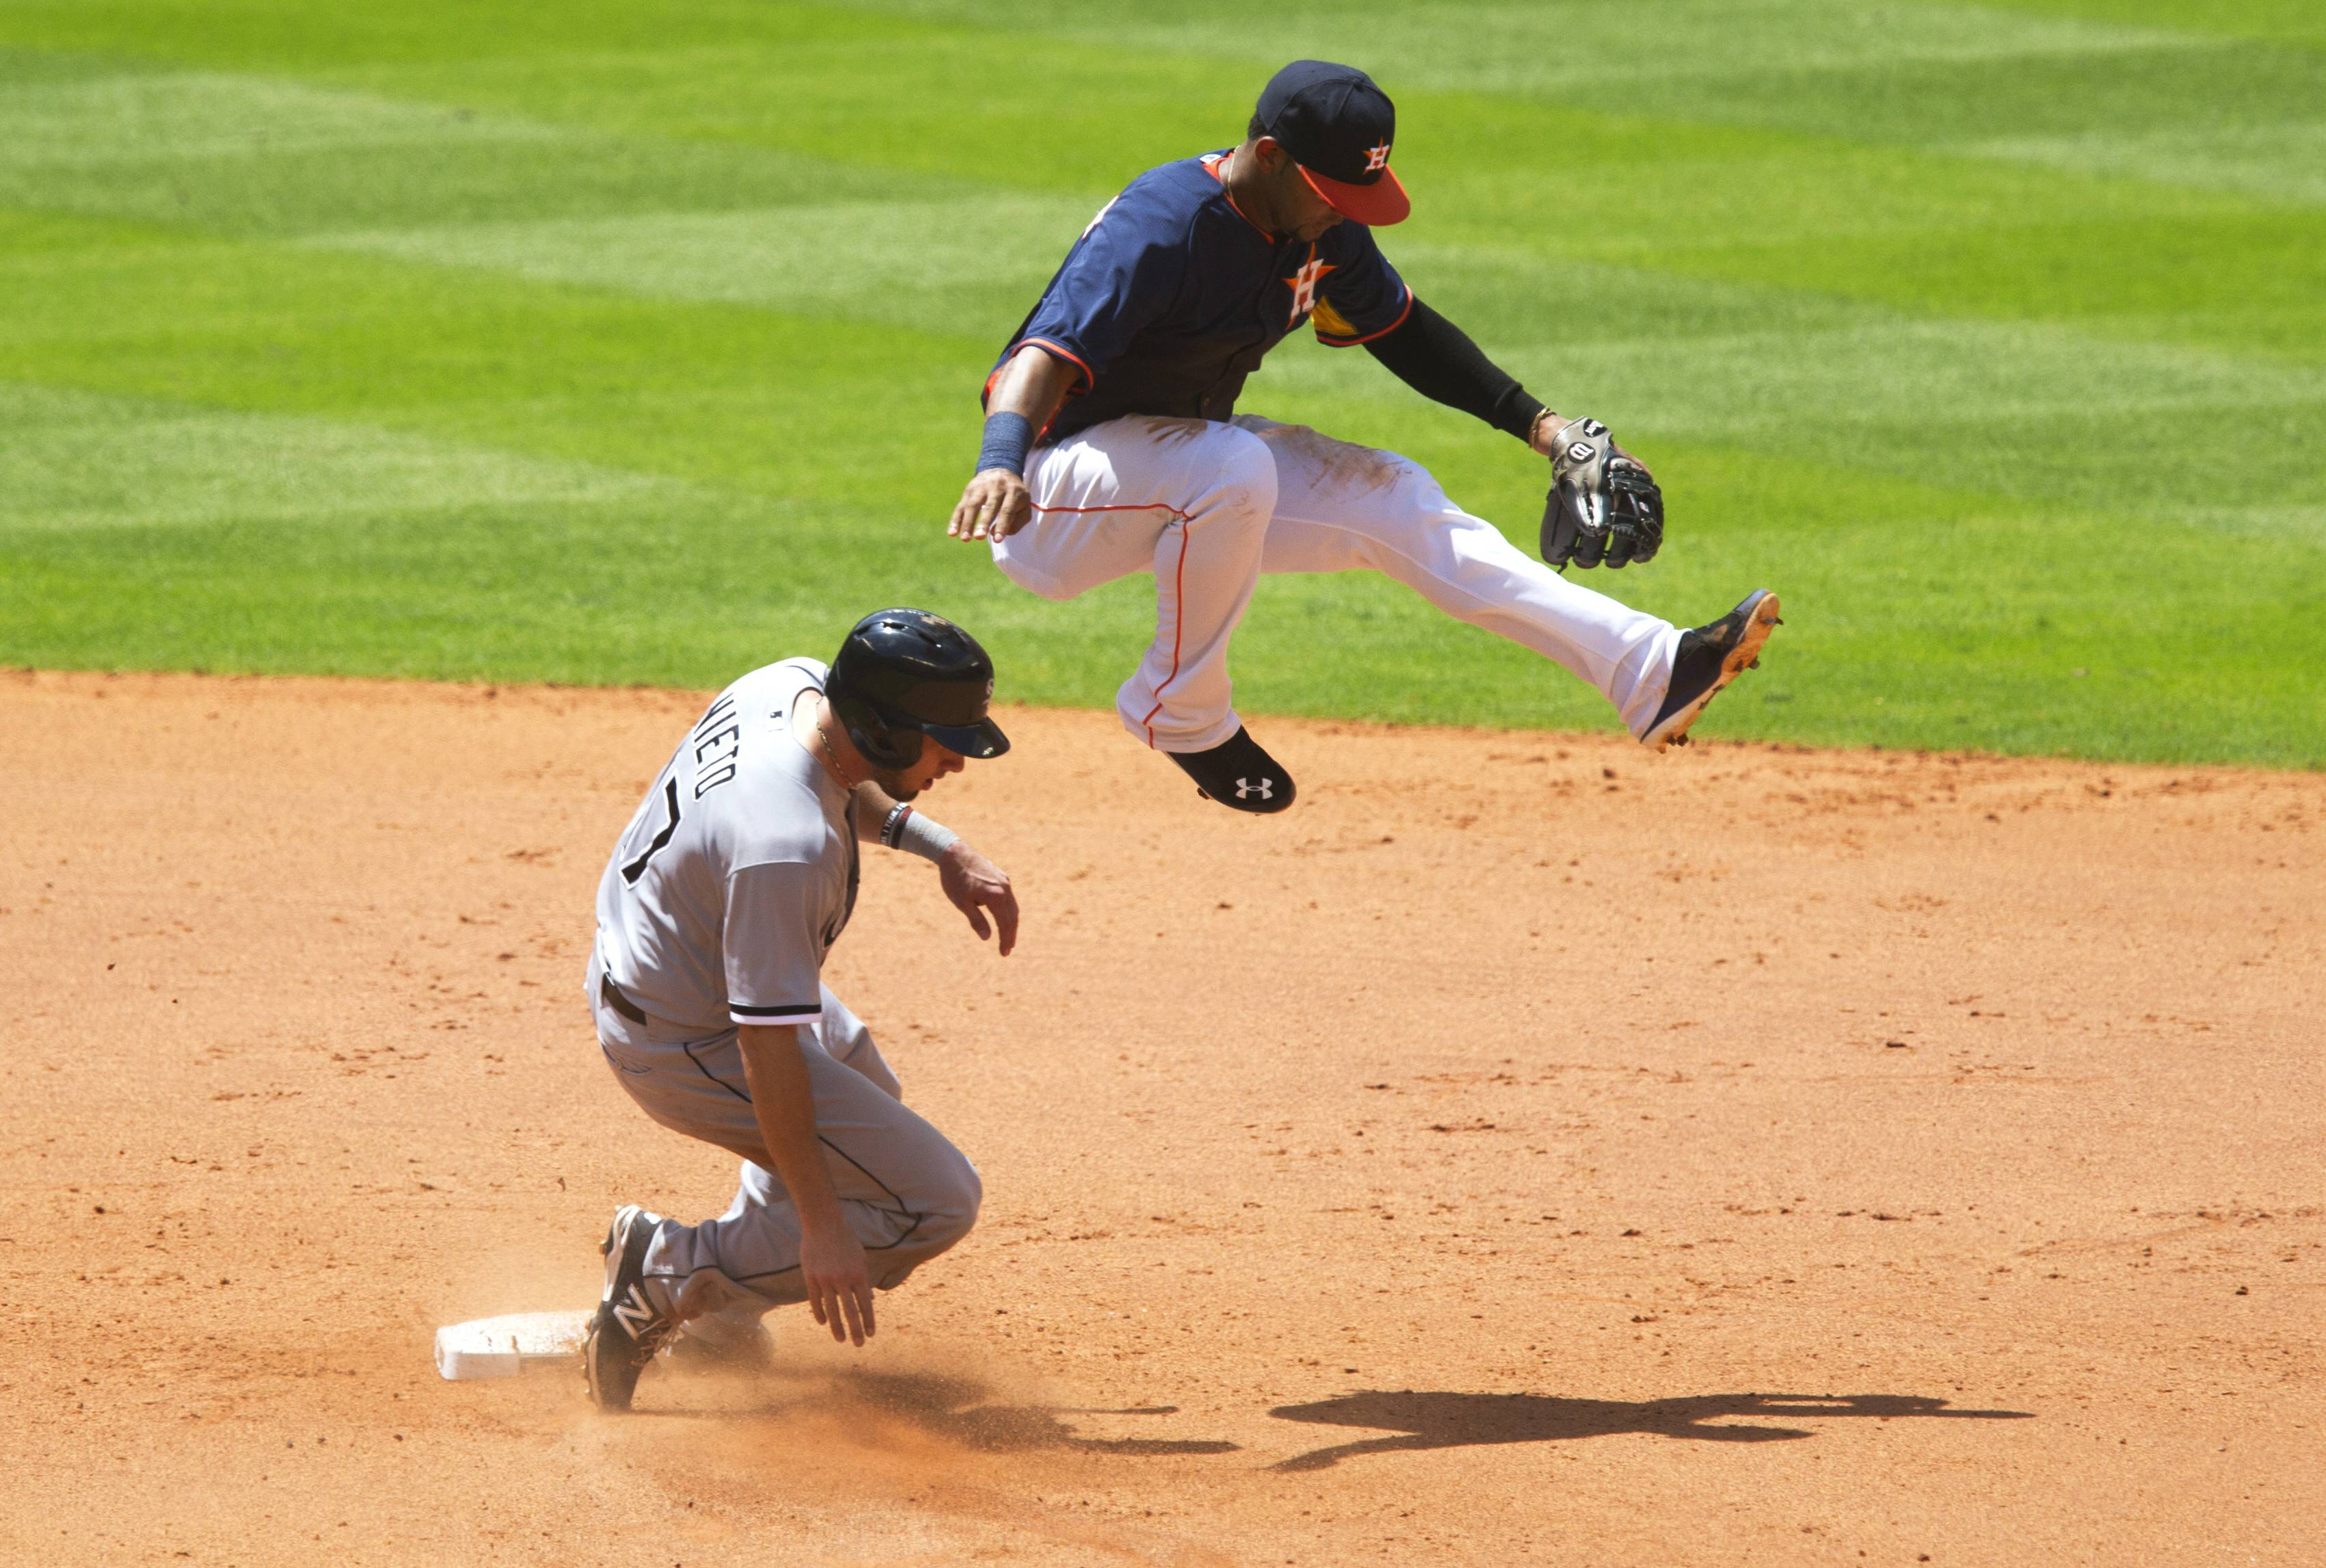 Houston Astros shortstop Jonathan Villar, right, leaps over Chicago White Sox's Adrian Nieto after making an out at second in the fifth inning during a baseball game, Sunday, May 18, 2014, in Houston.